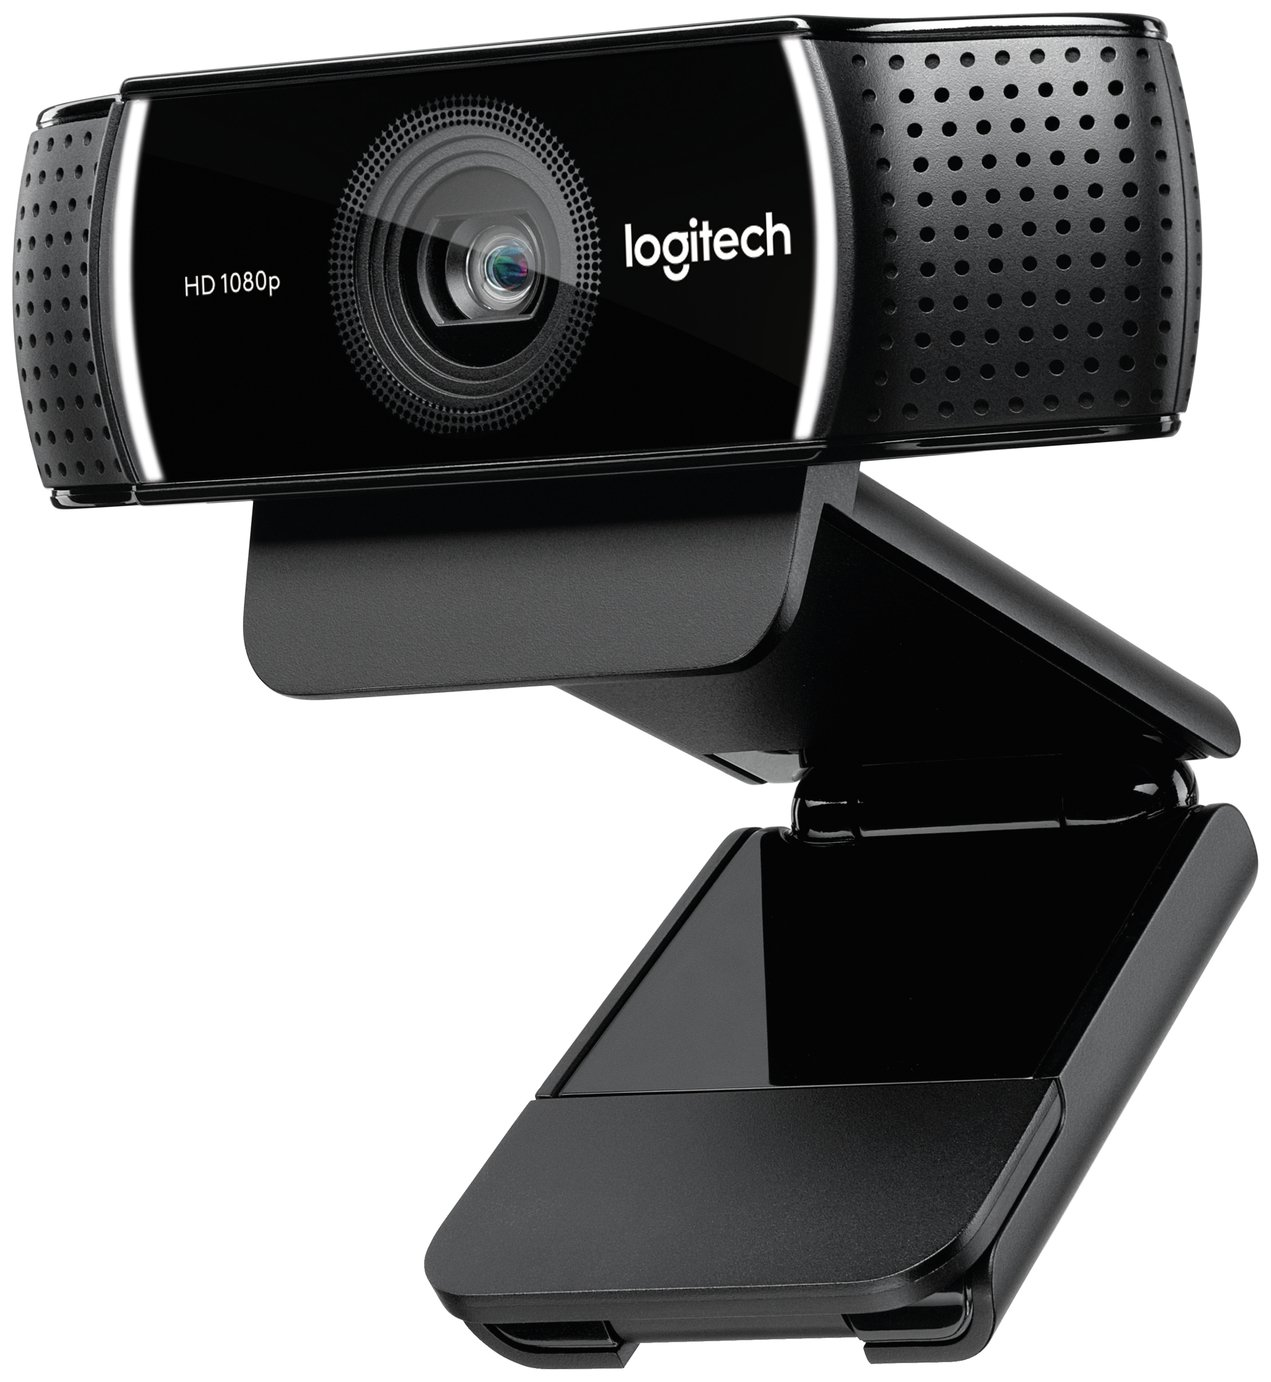 Image of Logitech - C922 Pro Stream Webcam.